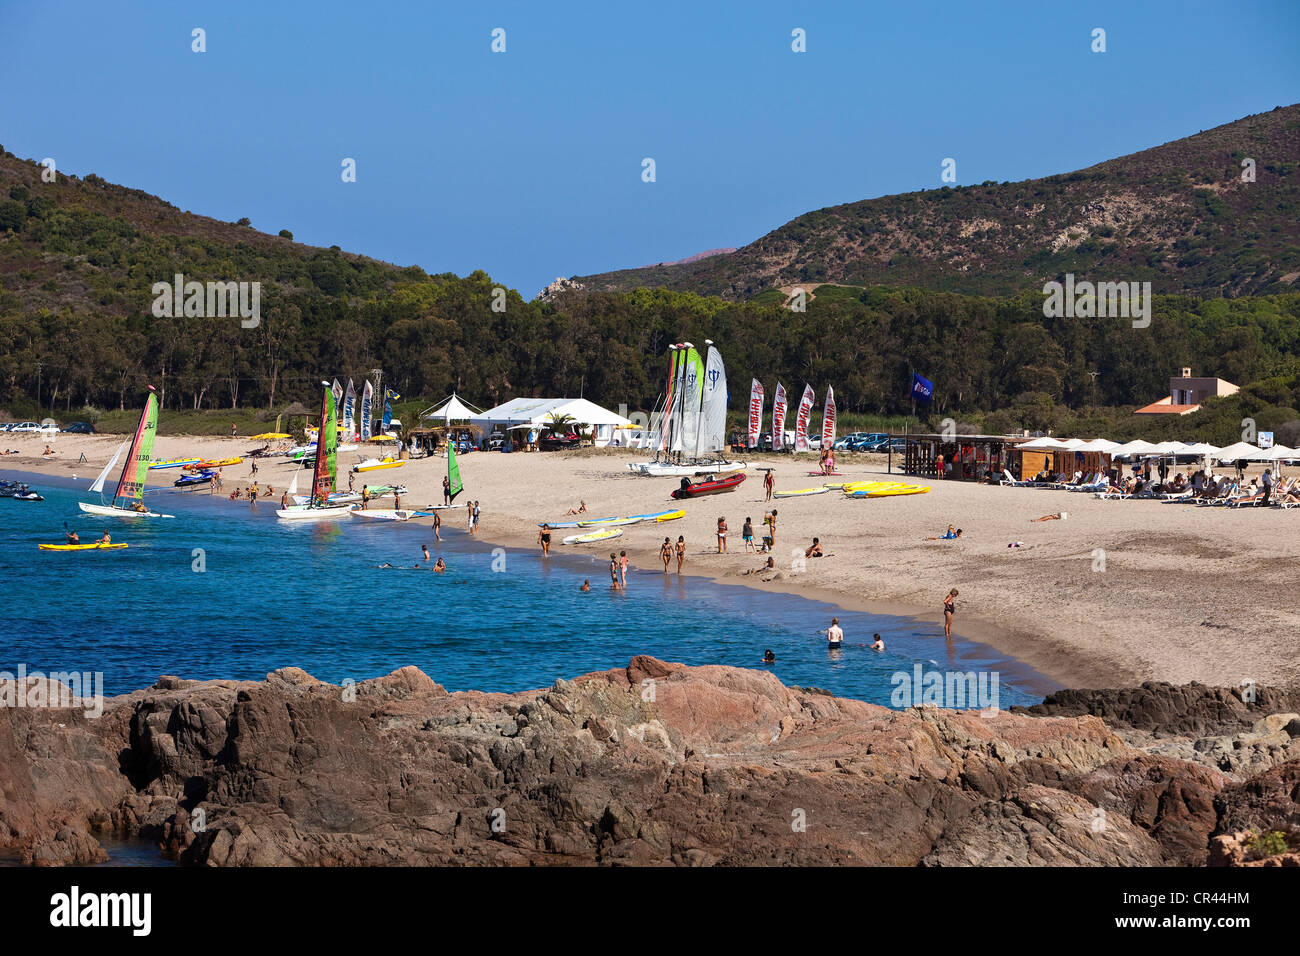 France, Corse du Sud, Club Med on Chiuni beach at Cargese - Stock Image